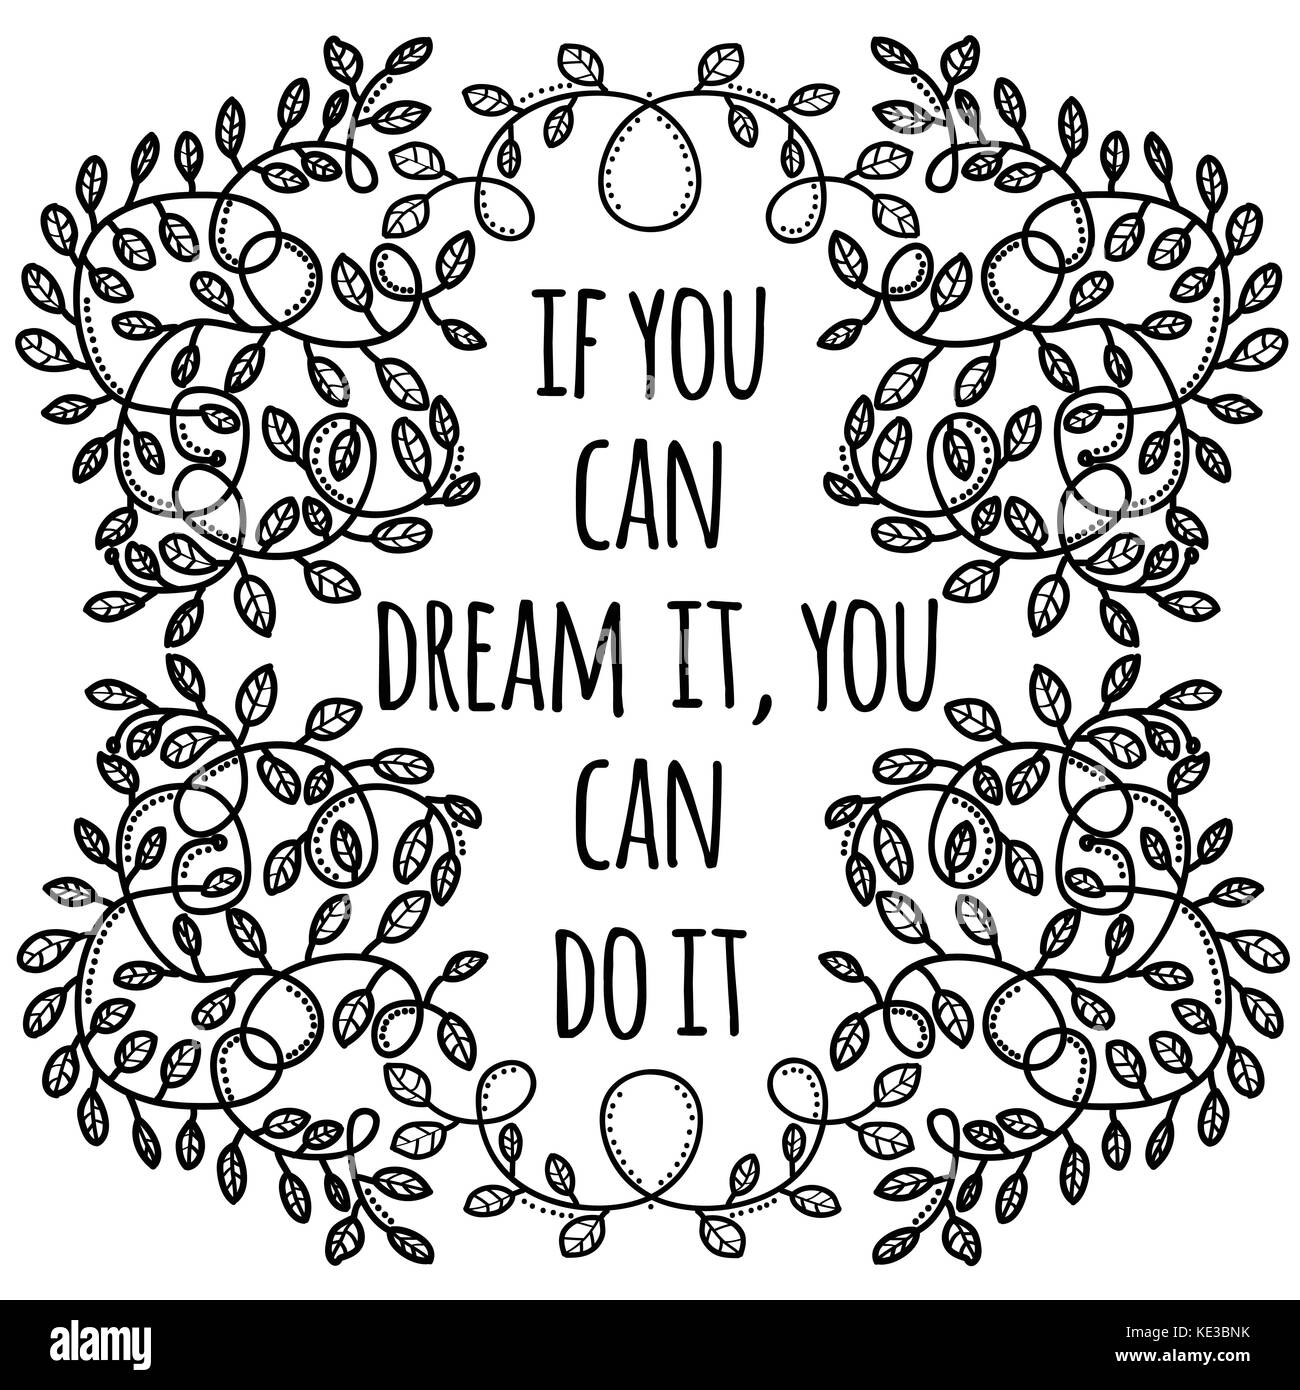 50+ Great If You Can Dream It You Can Do It Quote